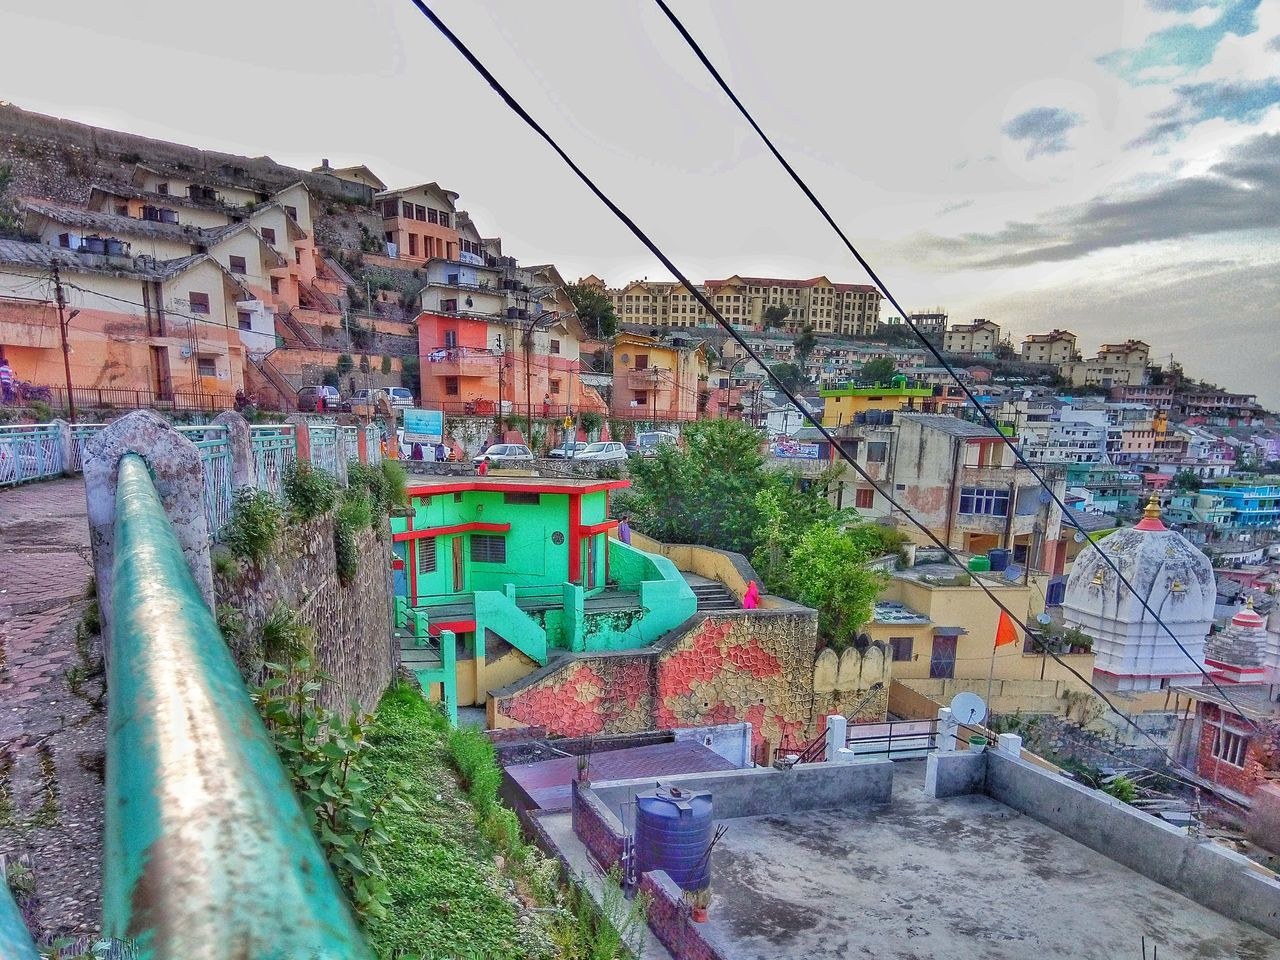 architecture, built structure, building exterior, building, residential district, sky, city, nature, no people, house, day, town, multi colored, cloud - sky, outdoors, plant, connection, community, water, wall, townscape